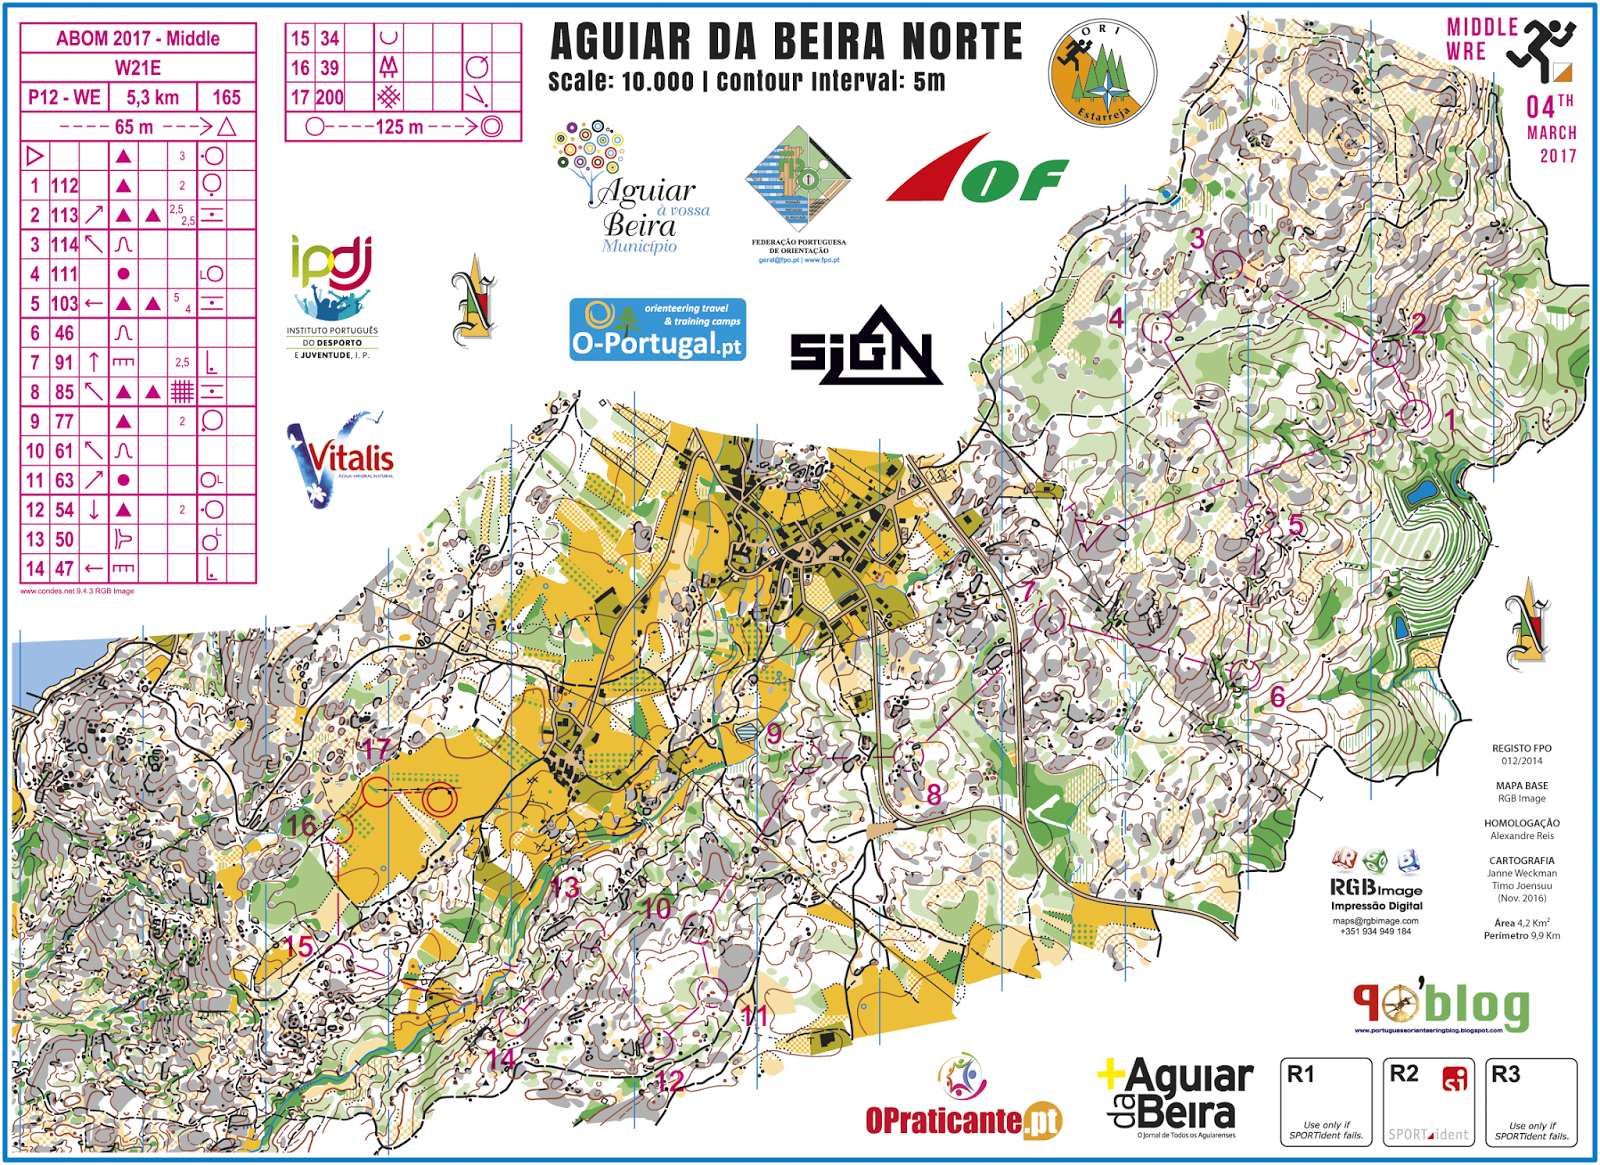 Portuguese Orienteering Blog ABOM Middle Distance WRE And - Portugal map distances